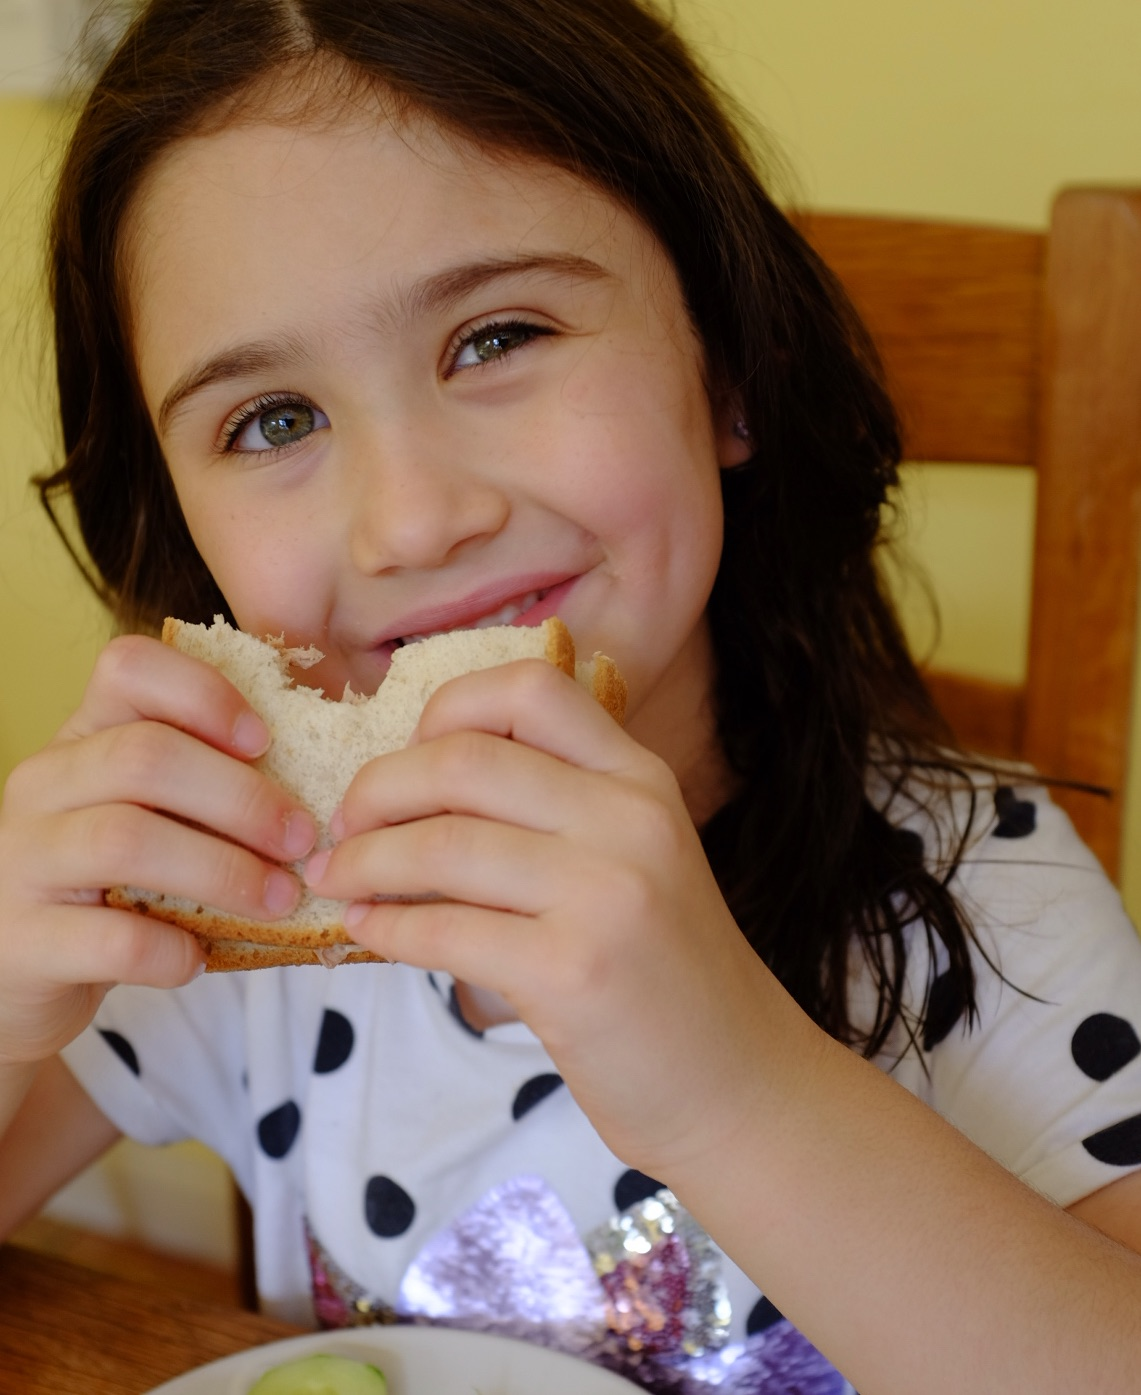 kids eat more healthily - girl eating a sandwich